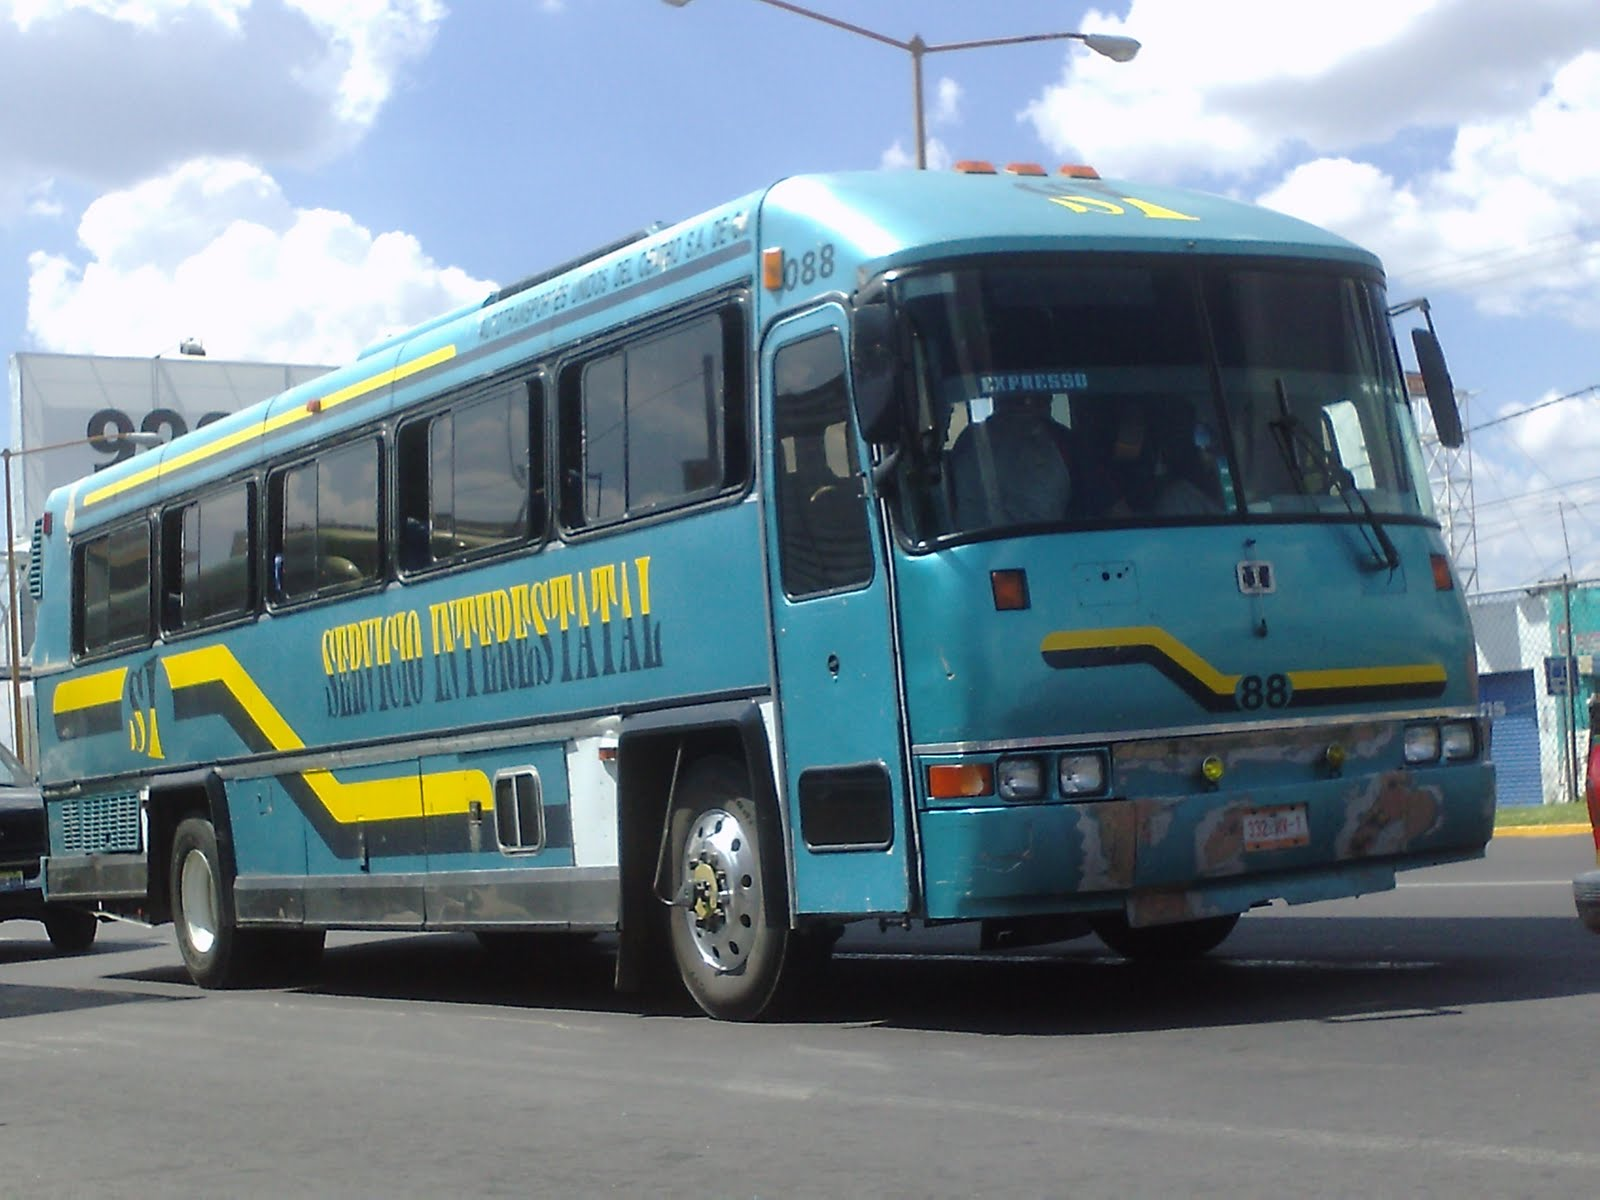 Renobuses company servicio interestatal for Servicio ren0